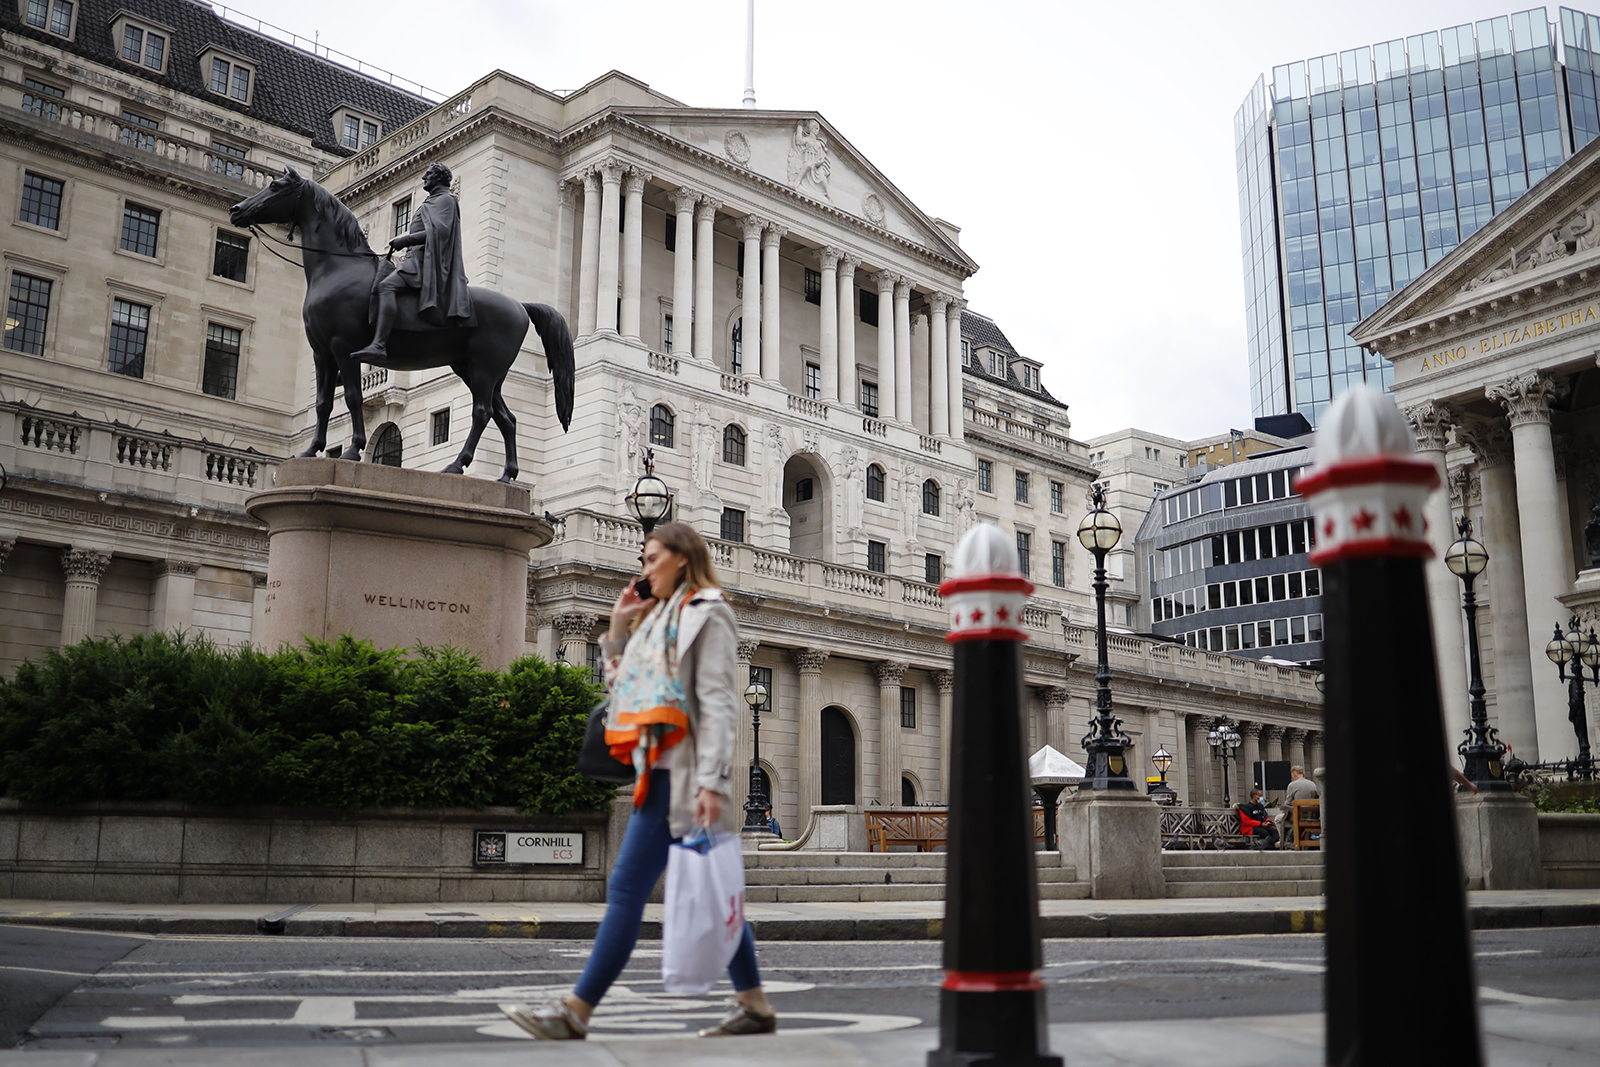 A pedestrian walks past the Bank of England in London on June 17.